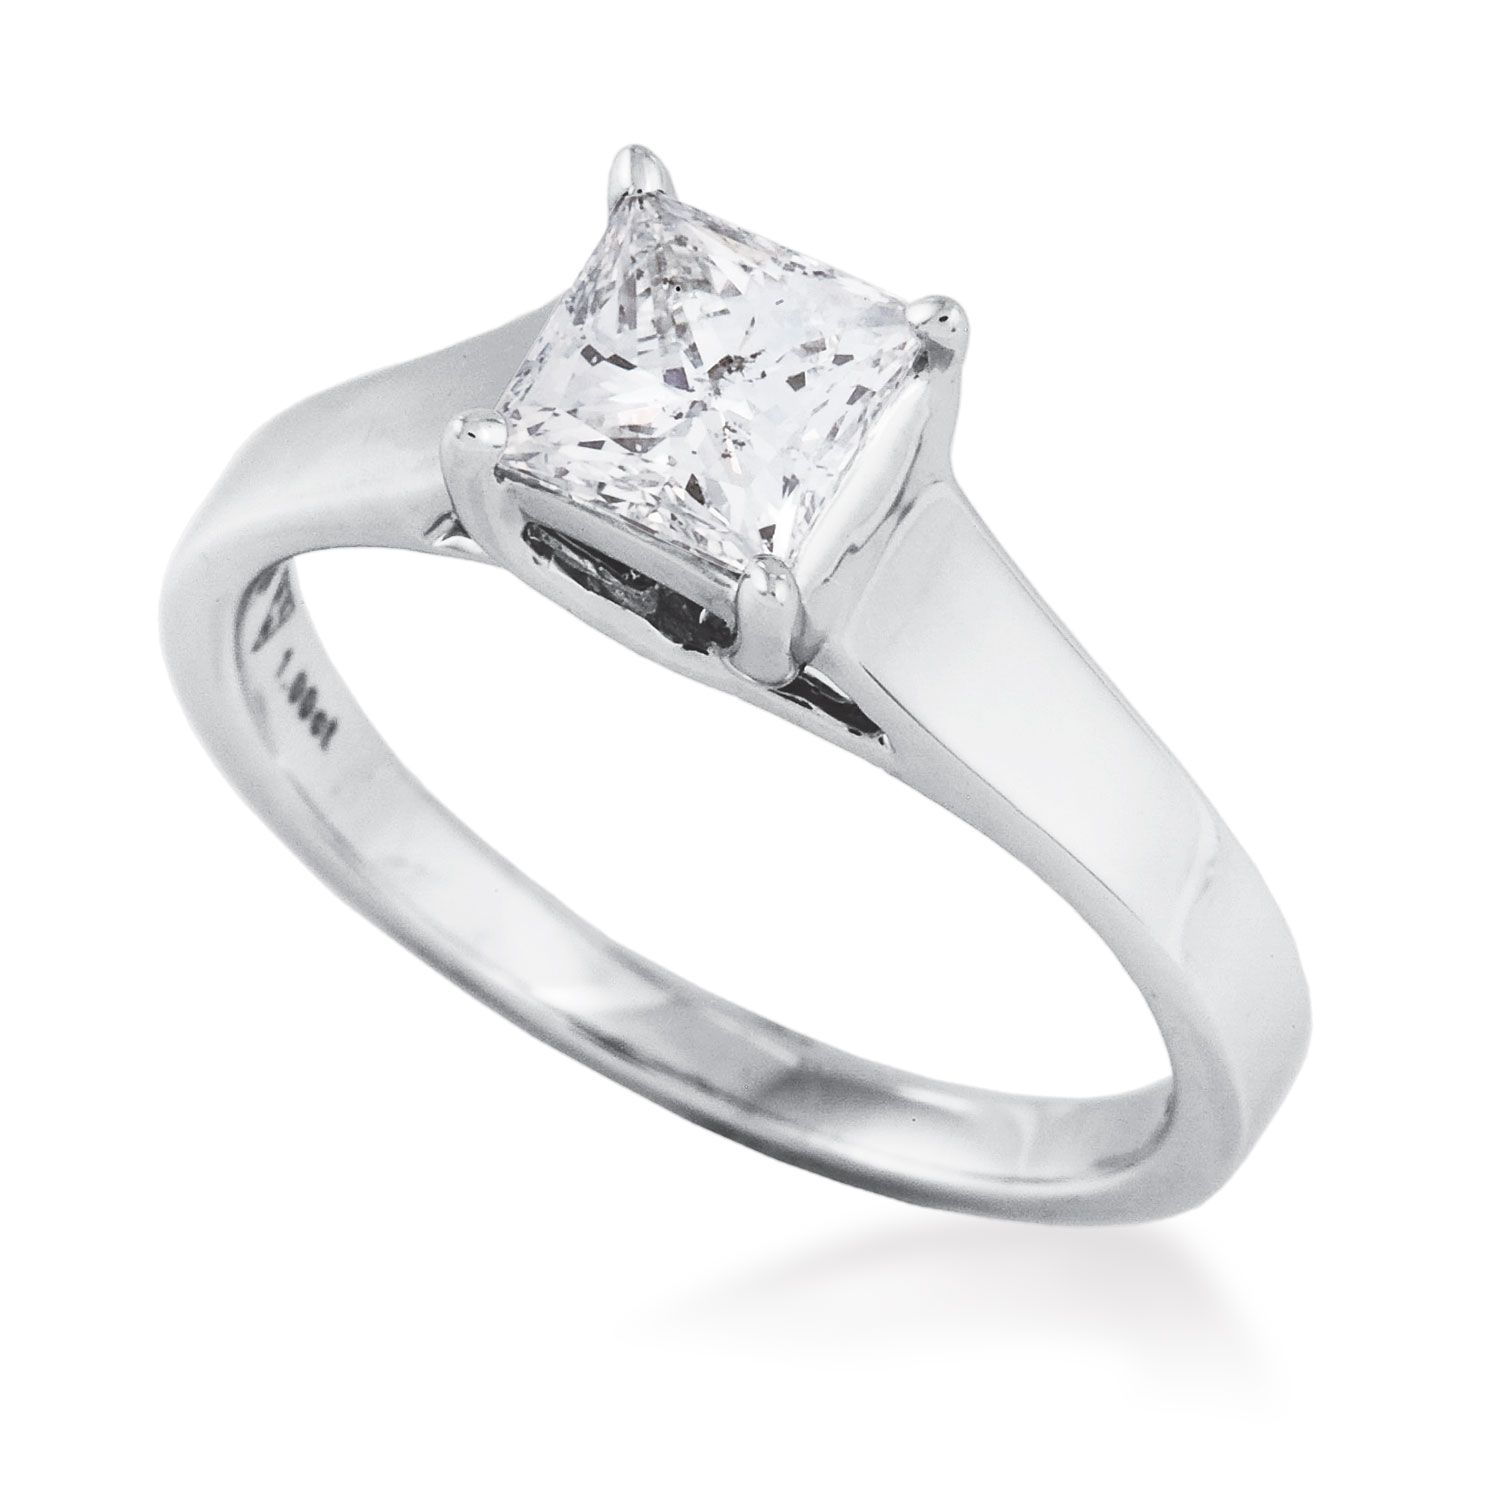 Product namect riddles noventa princess cut diamond solitaire